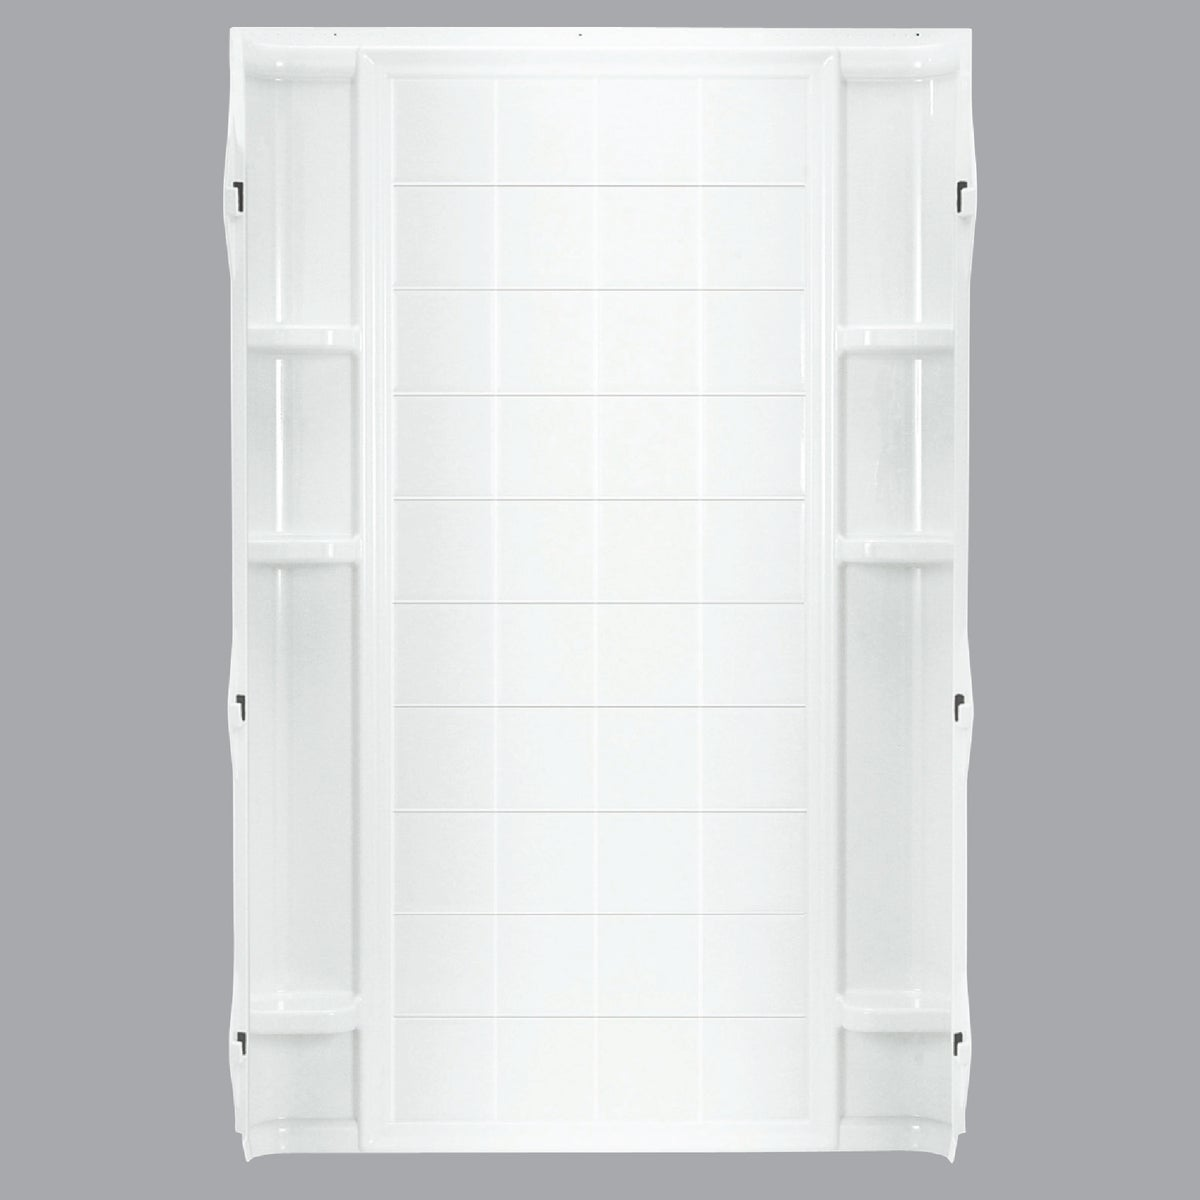 "36"" WHITE TILE BACKWALL - 72102100-0 by Sterling Pbg/vikrell"